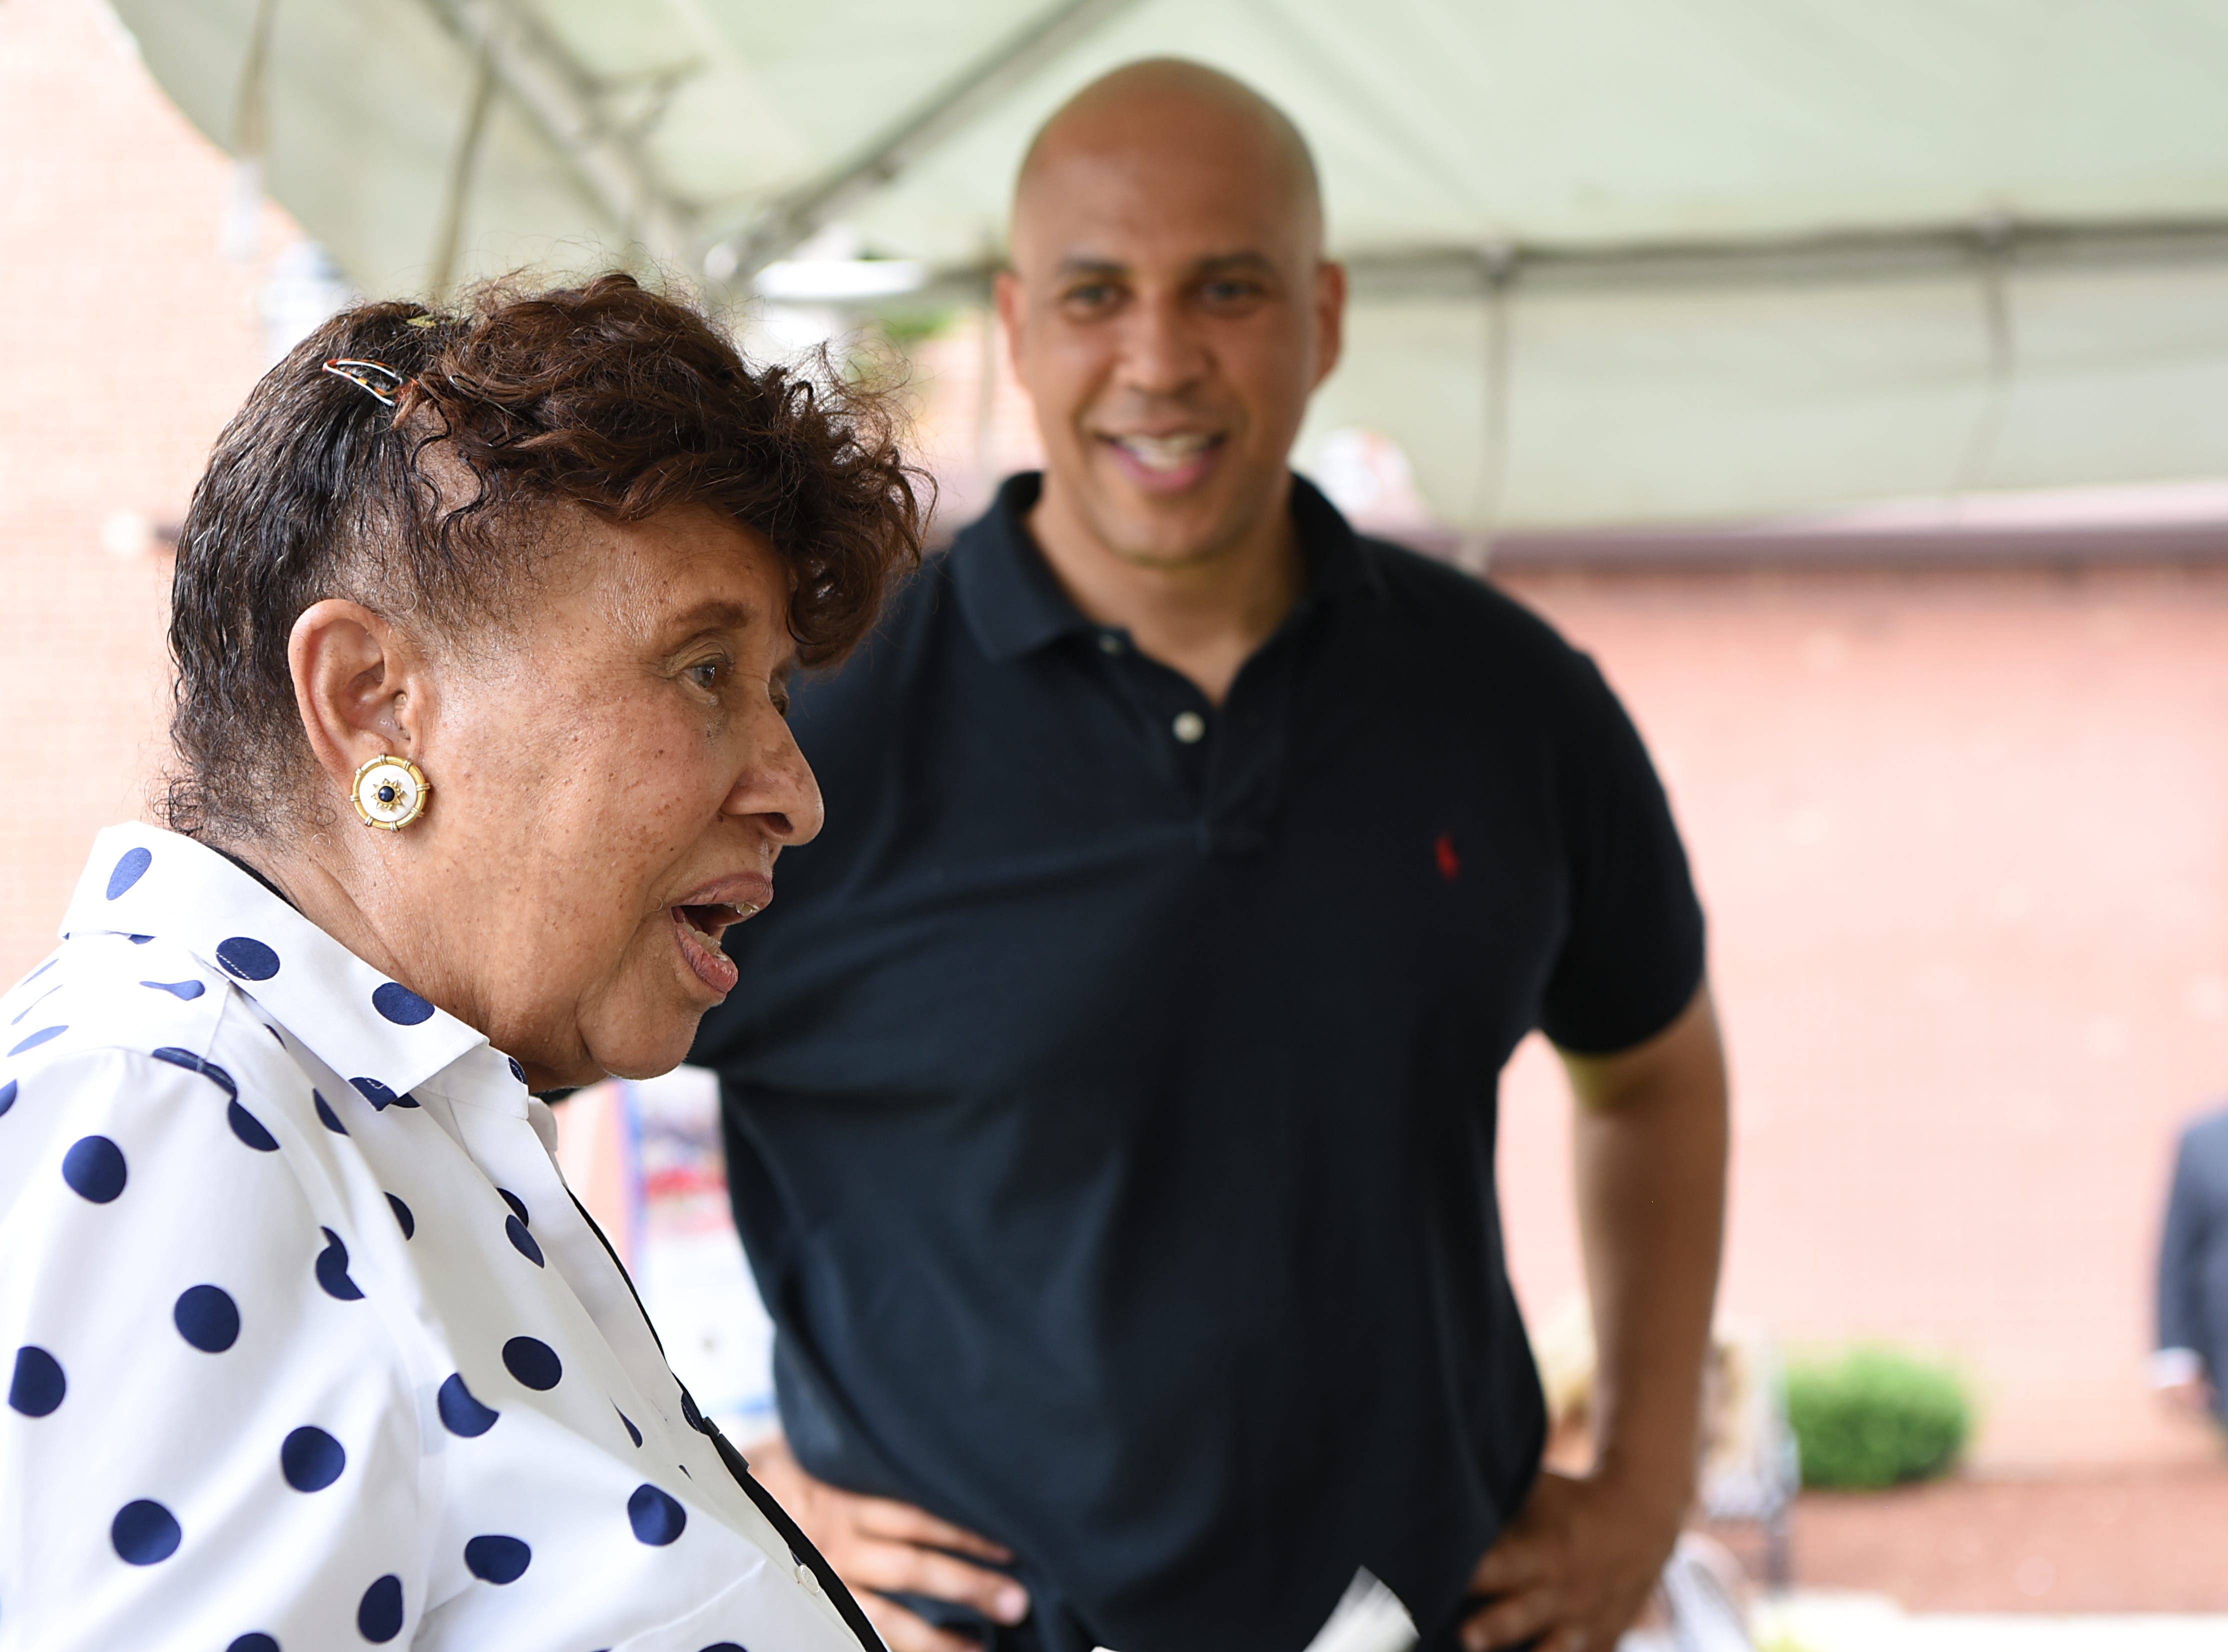 Lee Porter and Cory Booker share some stories during the Fair Housing Council of Northern New Jersey picnic in Hackensack on Friday August 10, 2018.